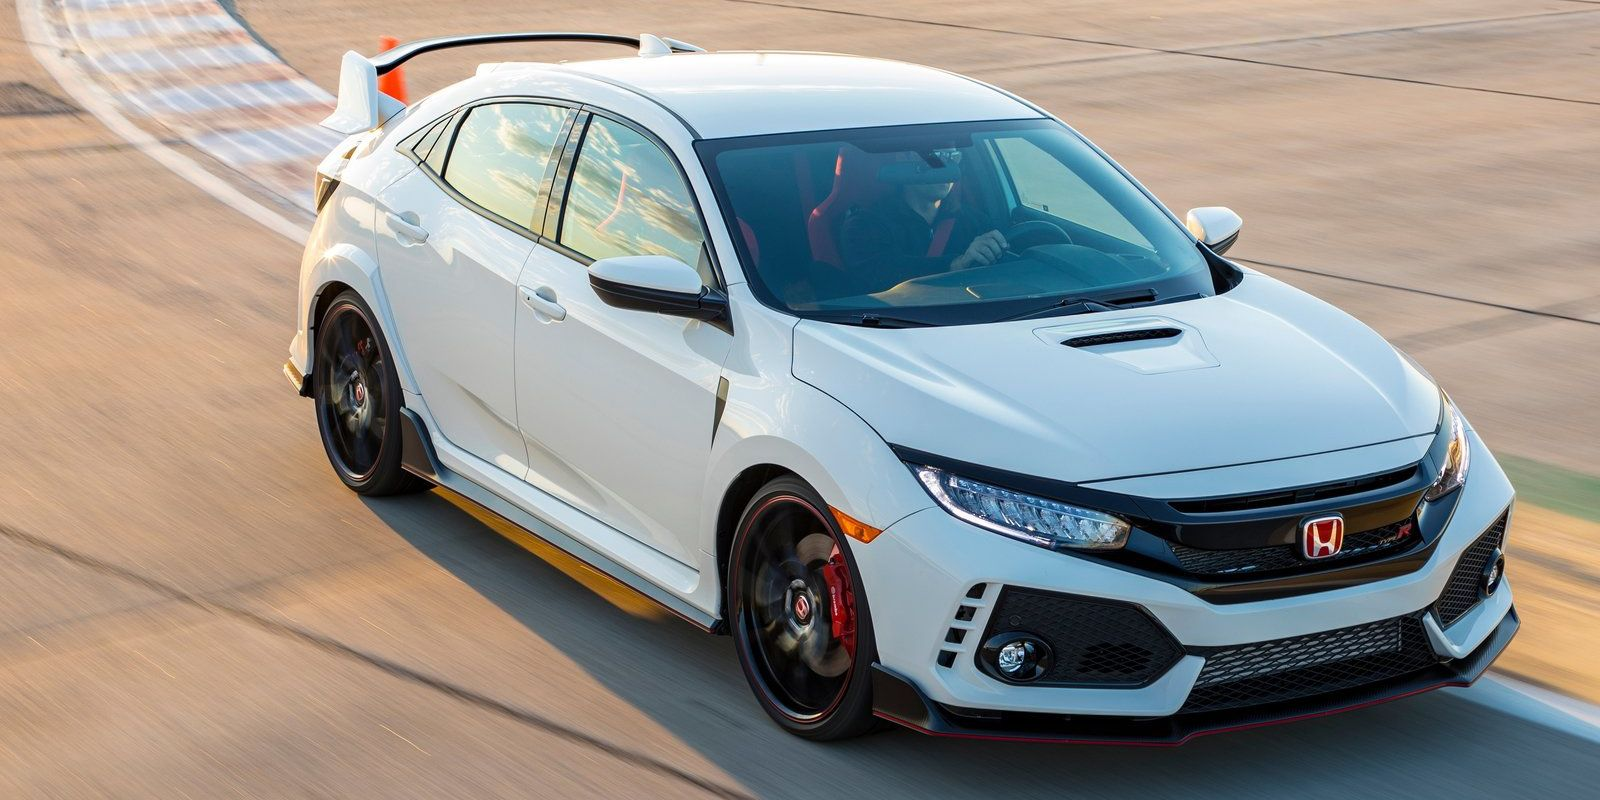 16 fastest cars under 40k in 2018 most powerful sedans sports rh roadandtrack com